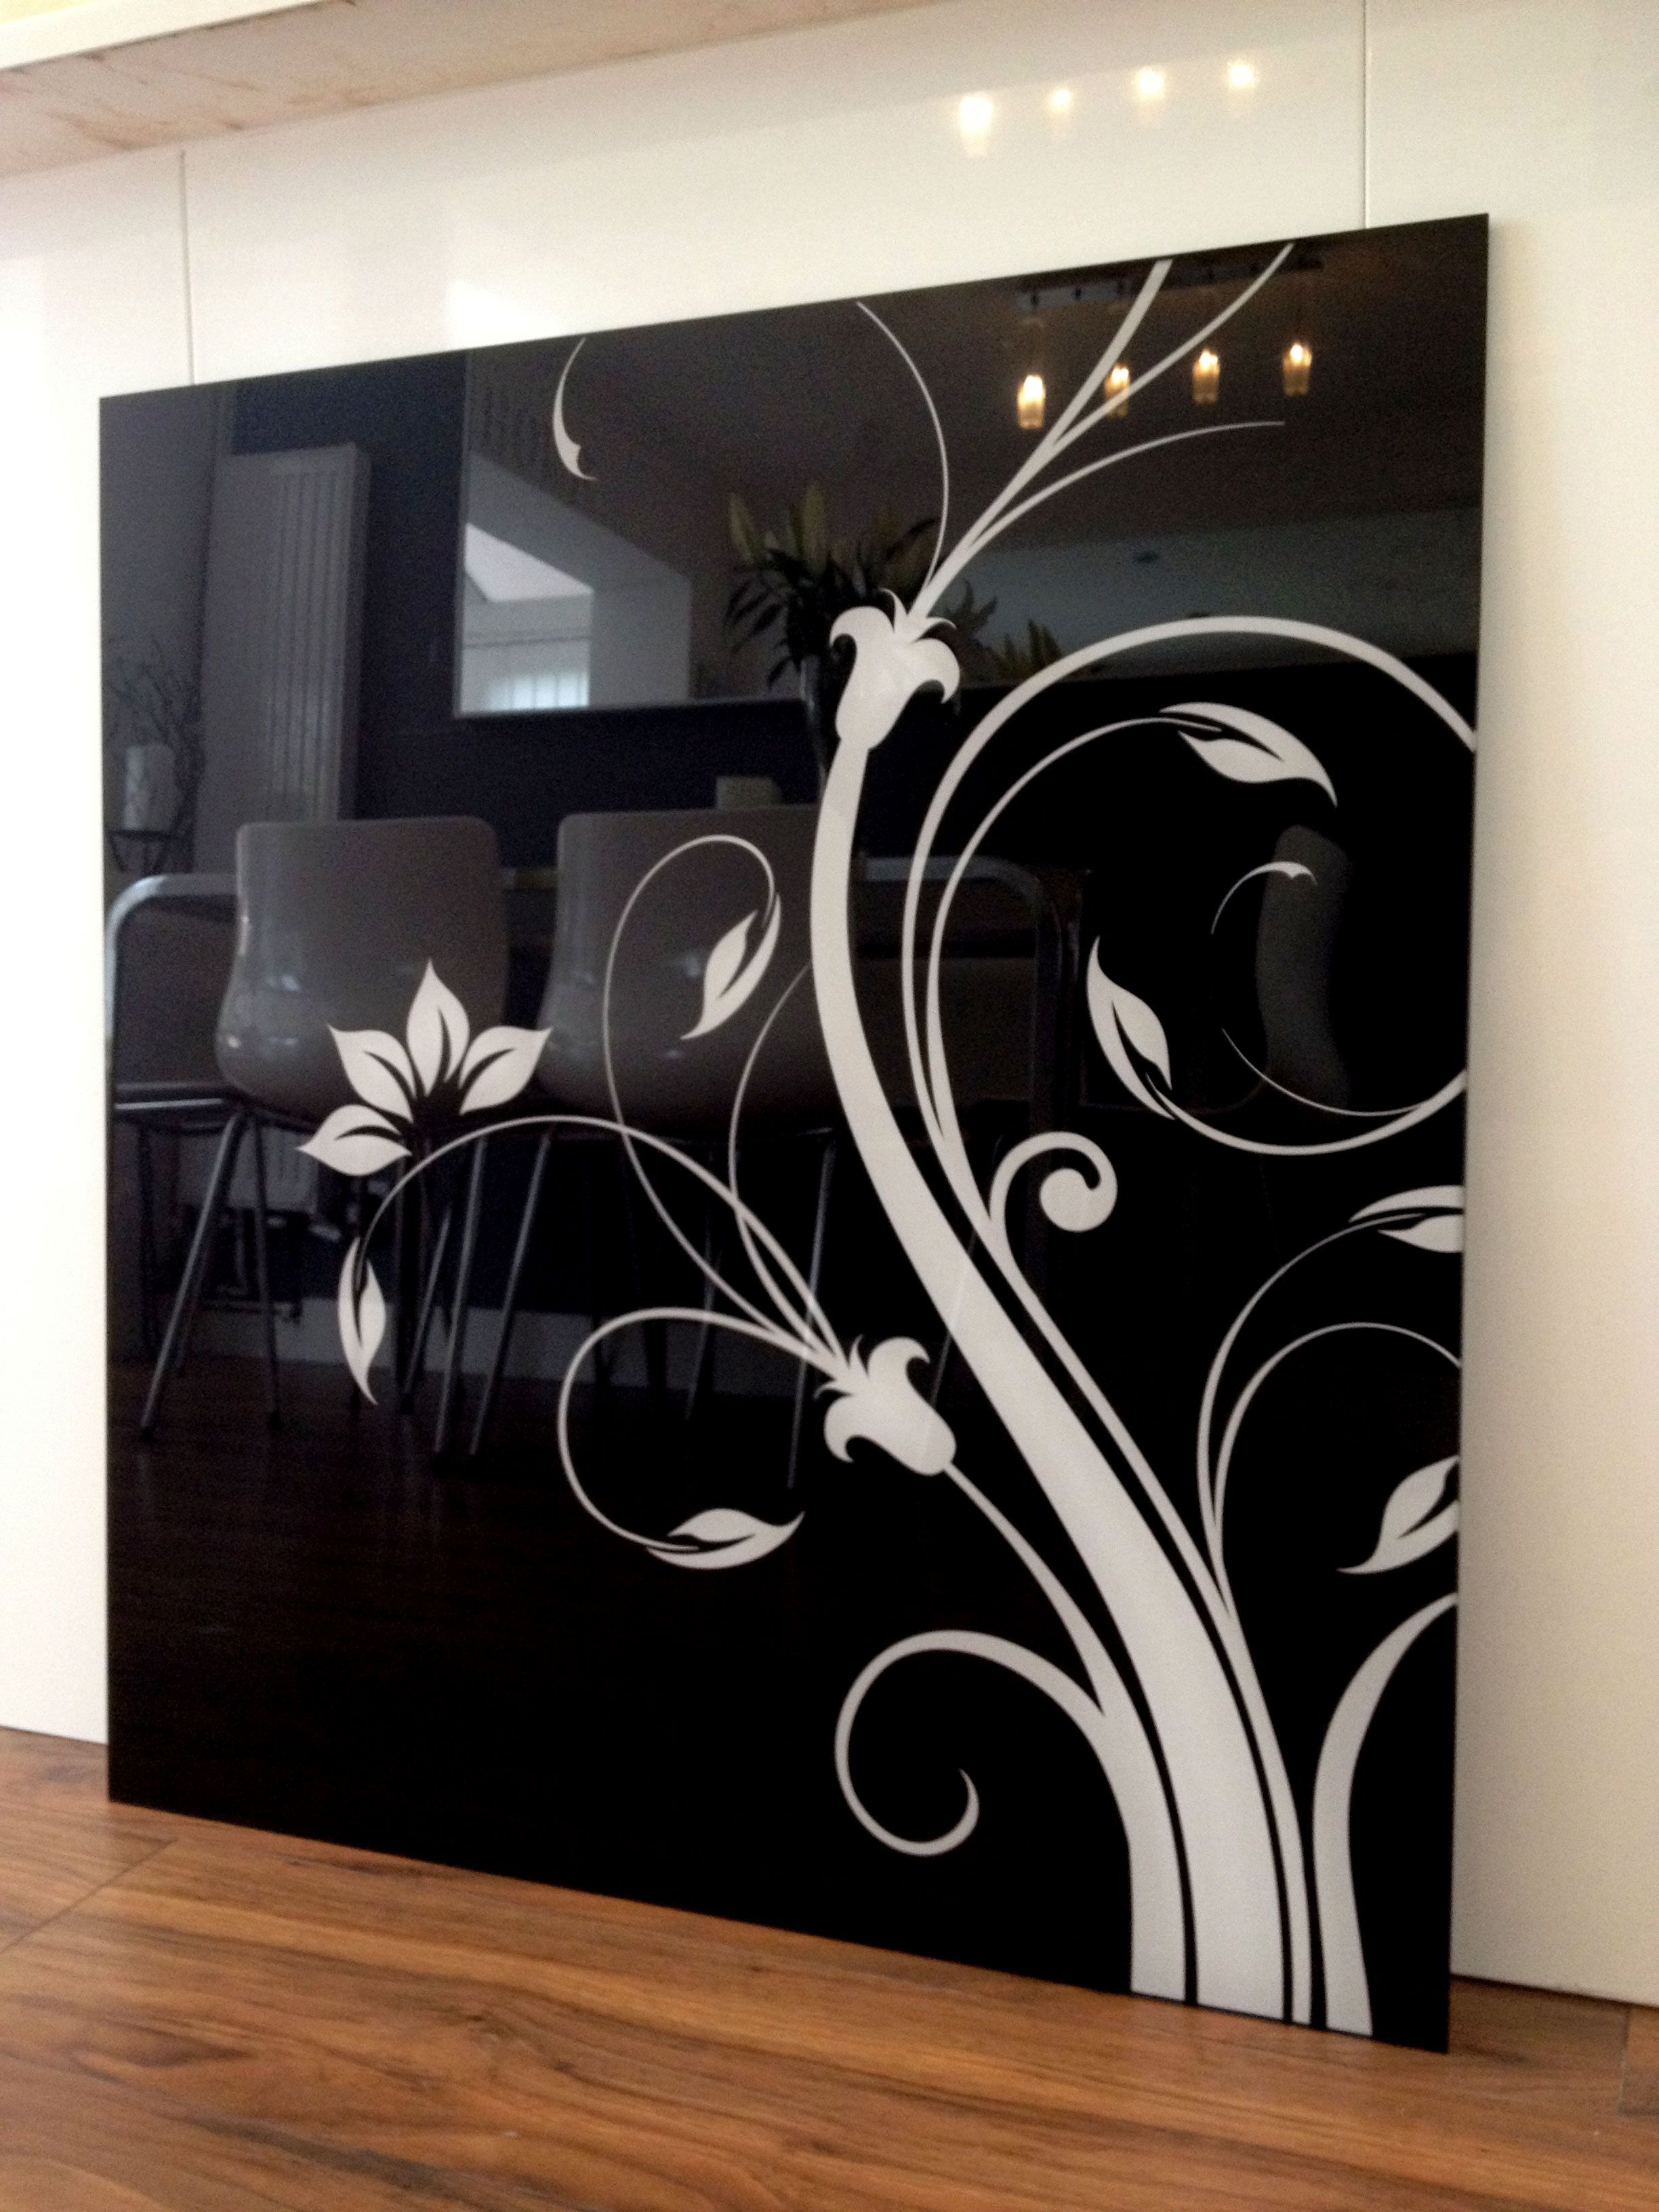 Our natola patterned glass splashbacks available for sale in our